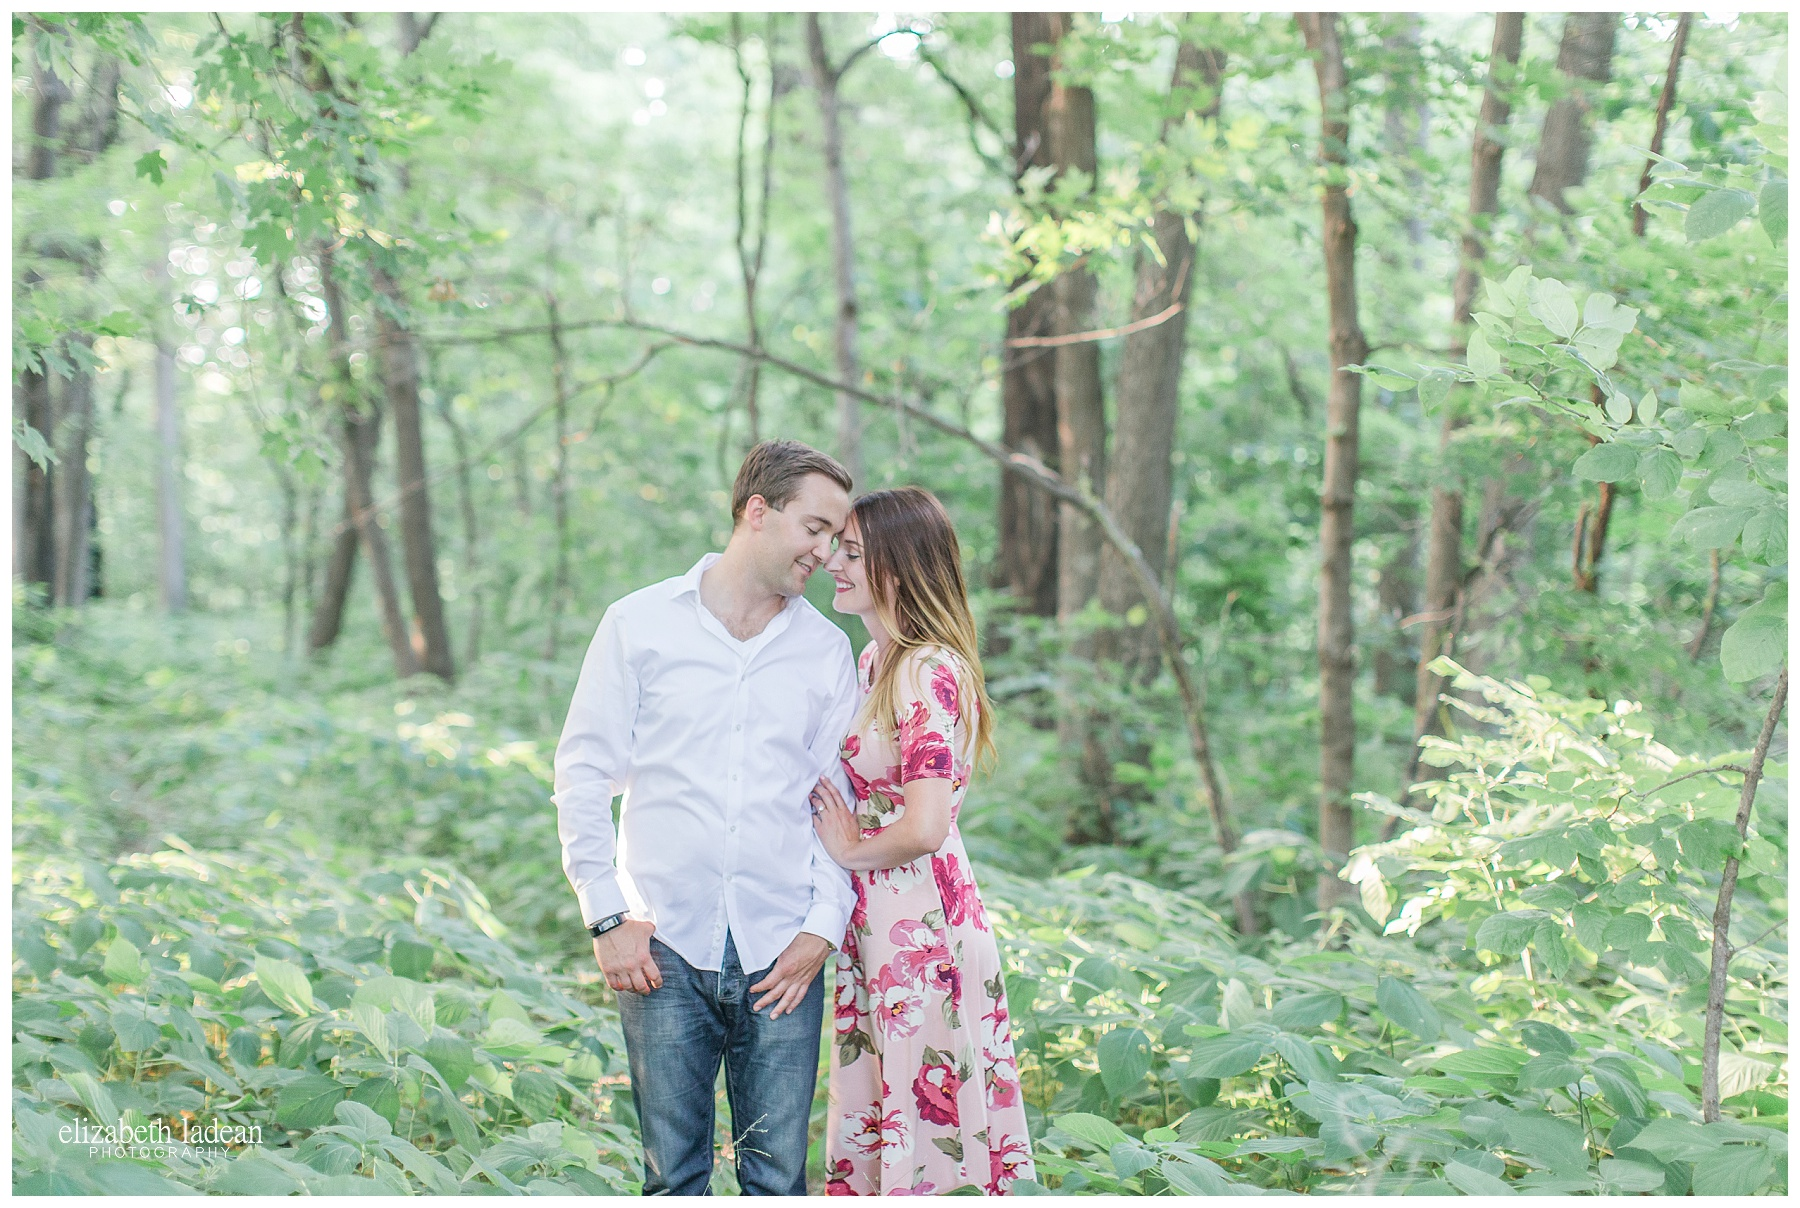 Weston-Bend-Kansas-City-Engagement-Photographer-C+A2017-Elizabeth-Ladean-Photography-photo_1160.jpg